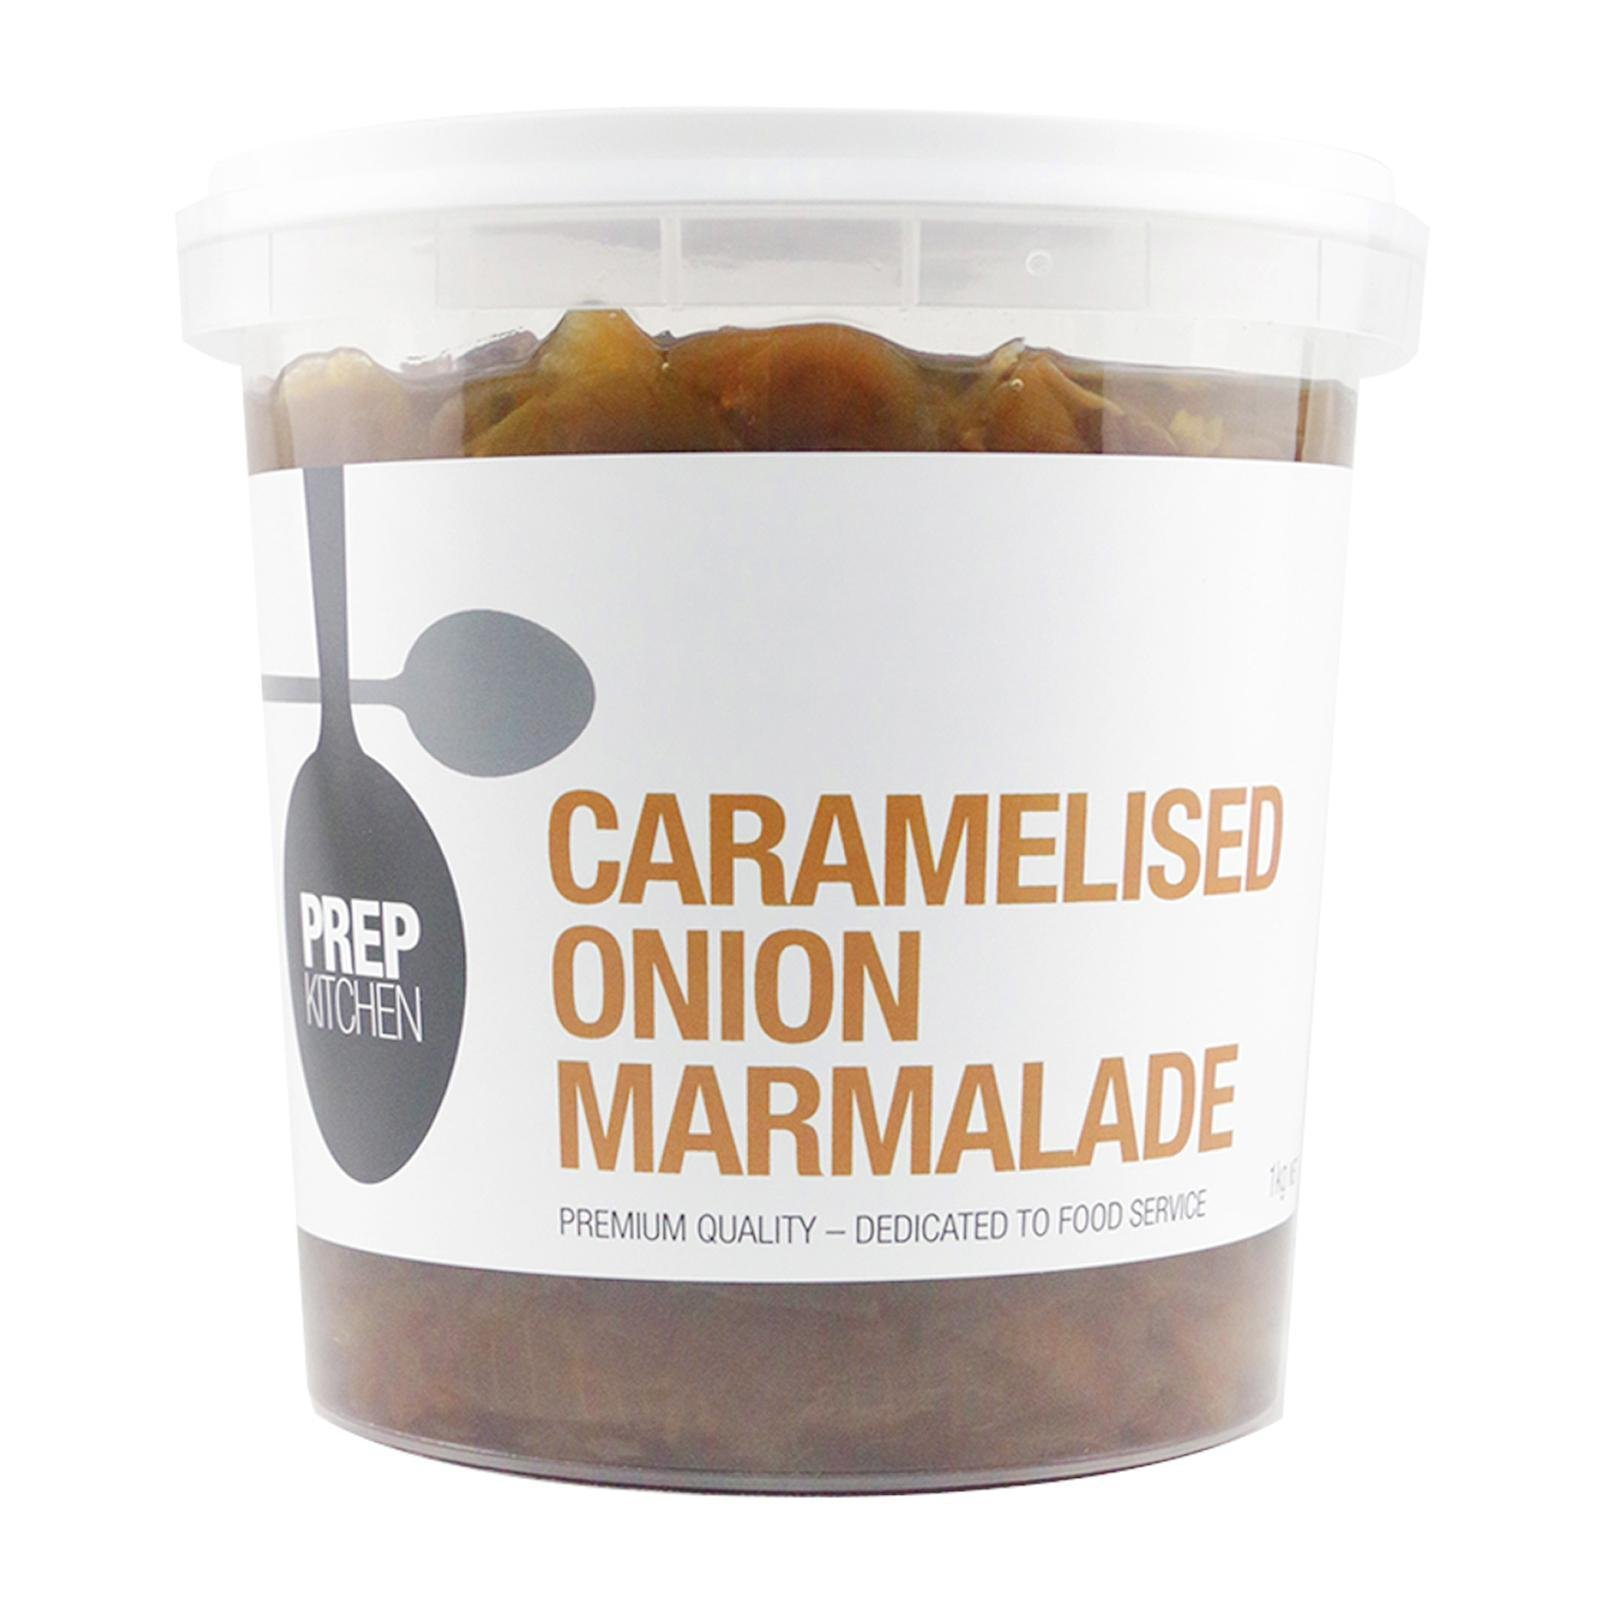 PREP KITCHEN MARMALADE CARAMELISED ONION 1KG